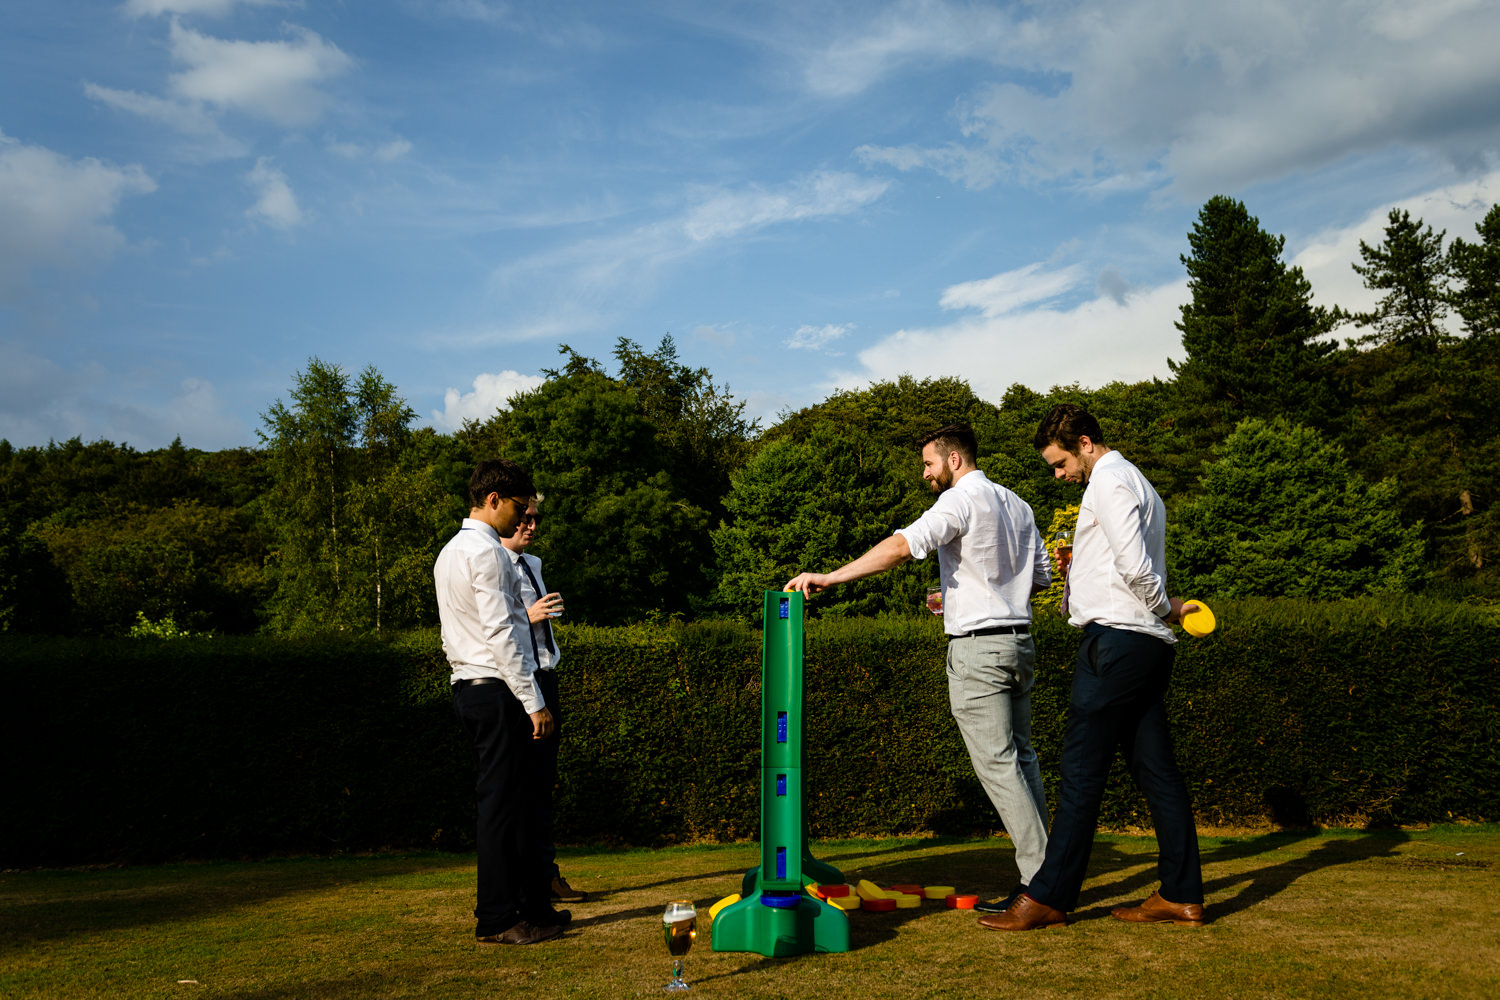 Lawn games,relaxed Whirlowbrook Hall photograph